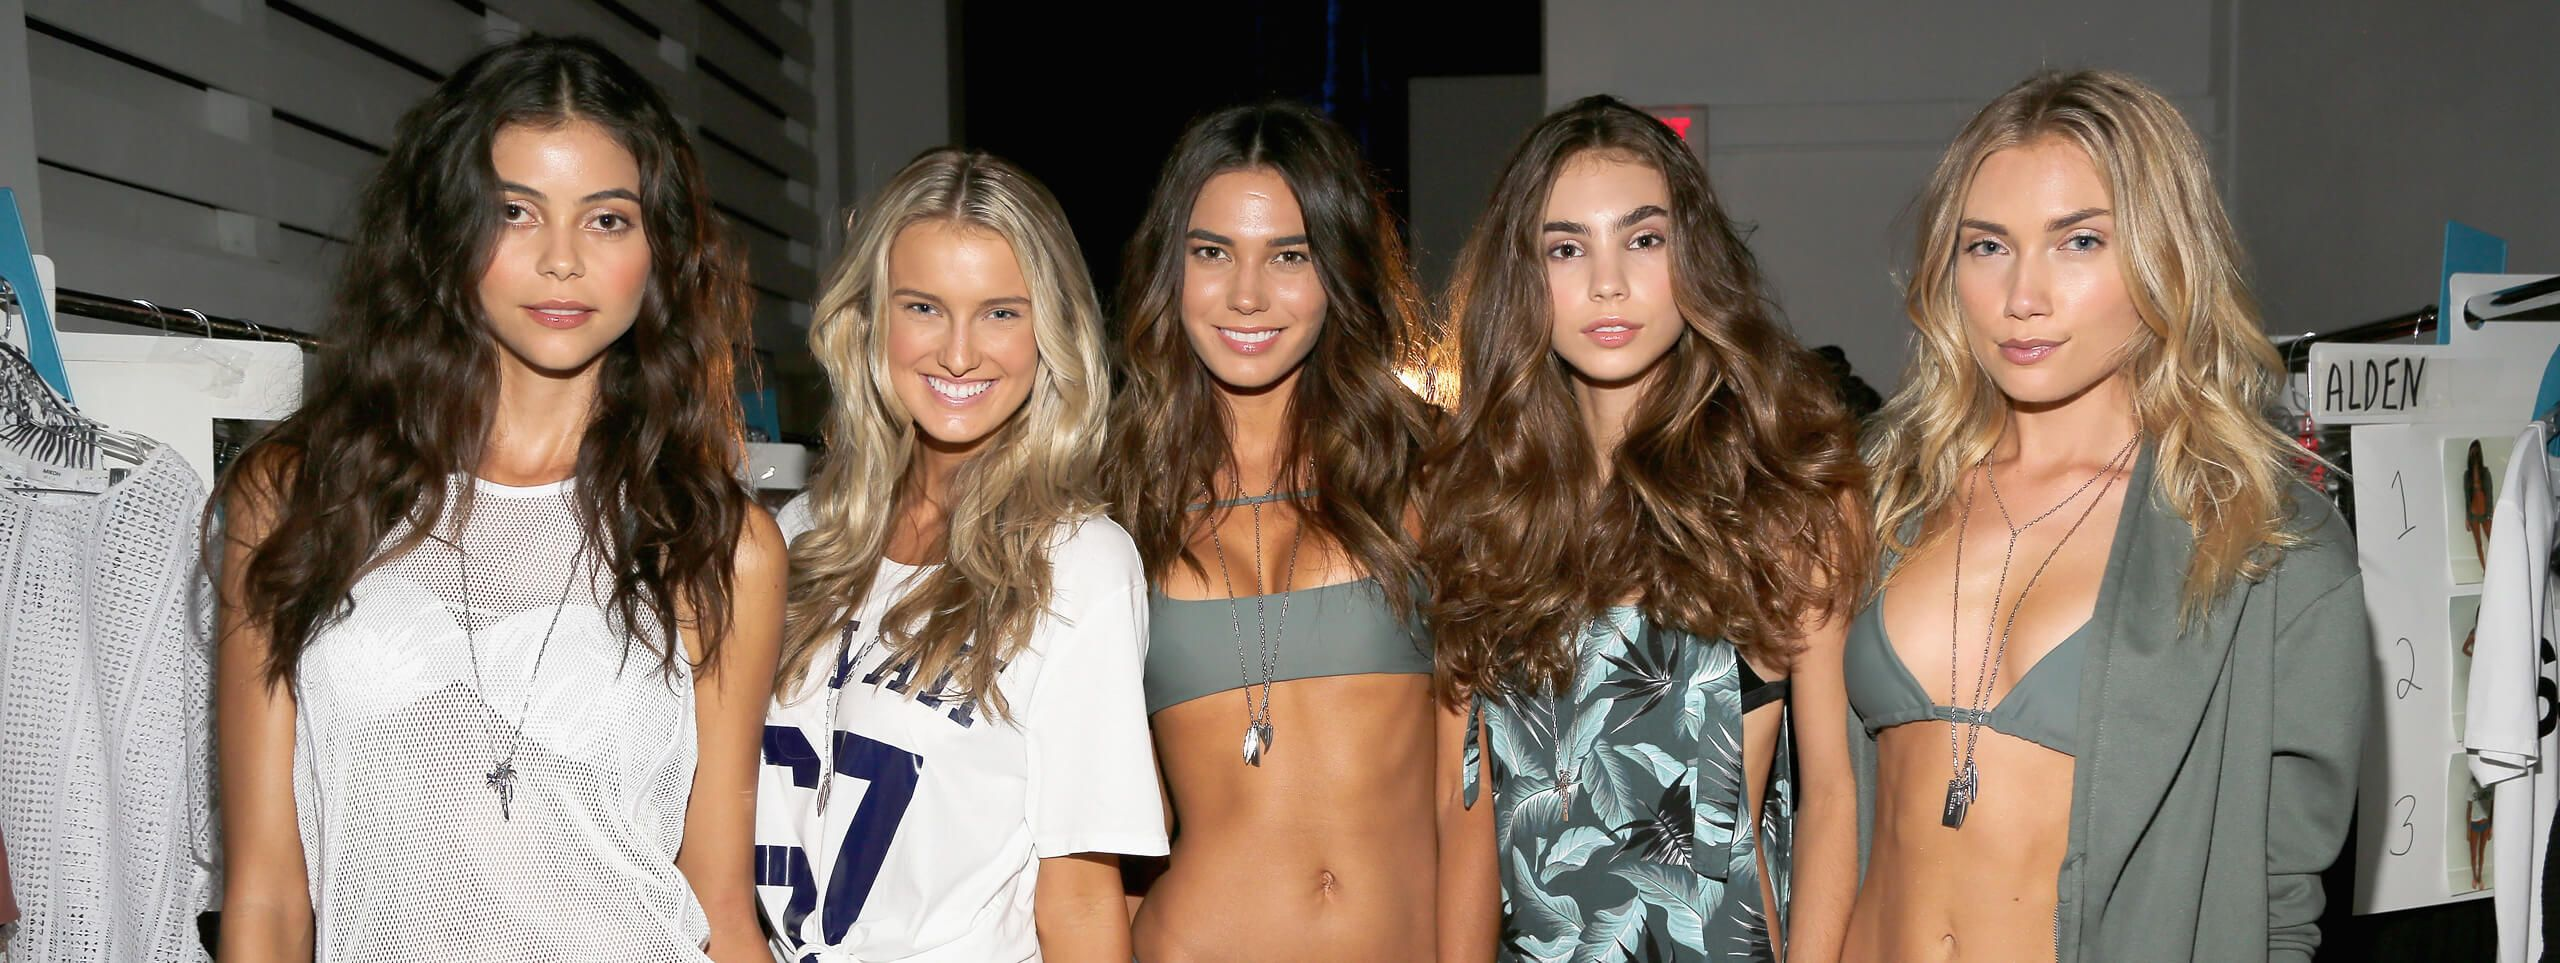 Five models with long wavy hair hairstyles